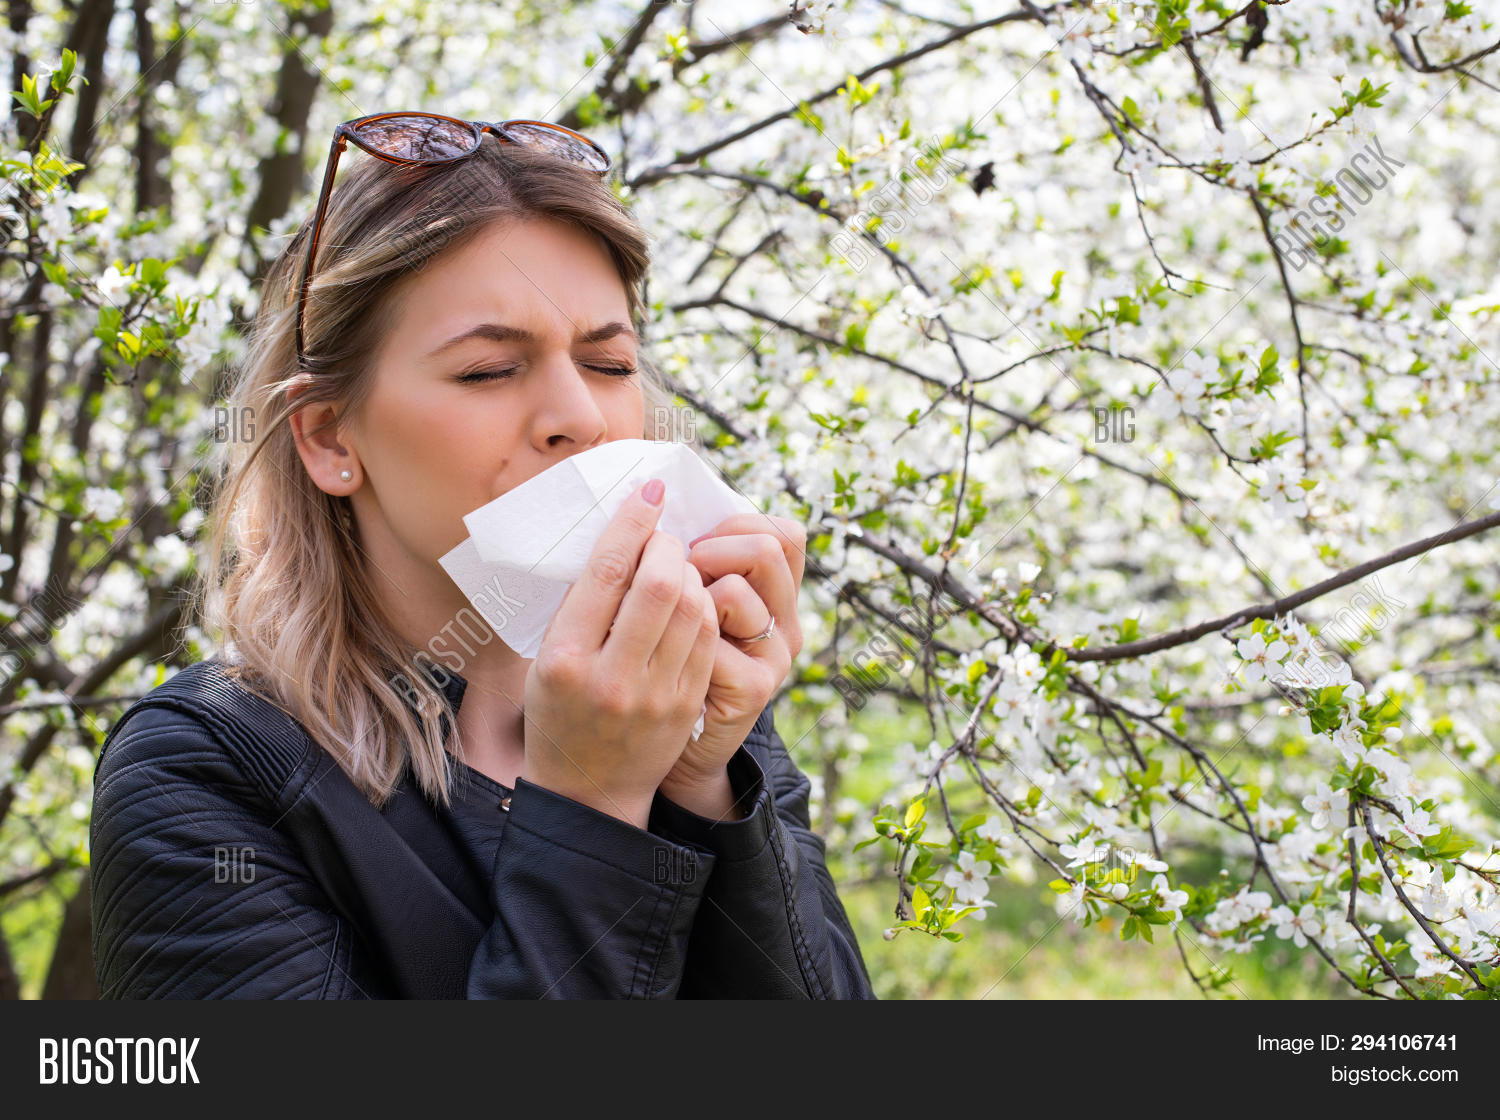 adult,allergic,allergy,asthma,beautiful,blossom,blowing,bronchodilator,chronic,close,female,fever,floral,flower,flu,garden,hand,health,healthcare,human,inhale,inhaler,leaf,meadow,medical,medicine,napkin,natural,nature,outdoor,park,people,person,pollen,pulmonary,reaction,season,sick,smell,sneeze,sneezing,spring,symptom,tissue,treatment,tree,up,virus,woman,young